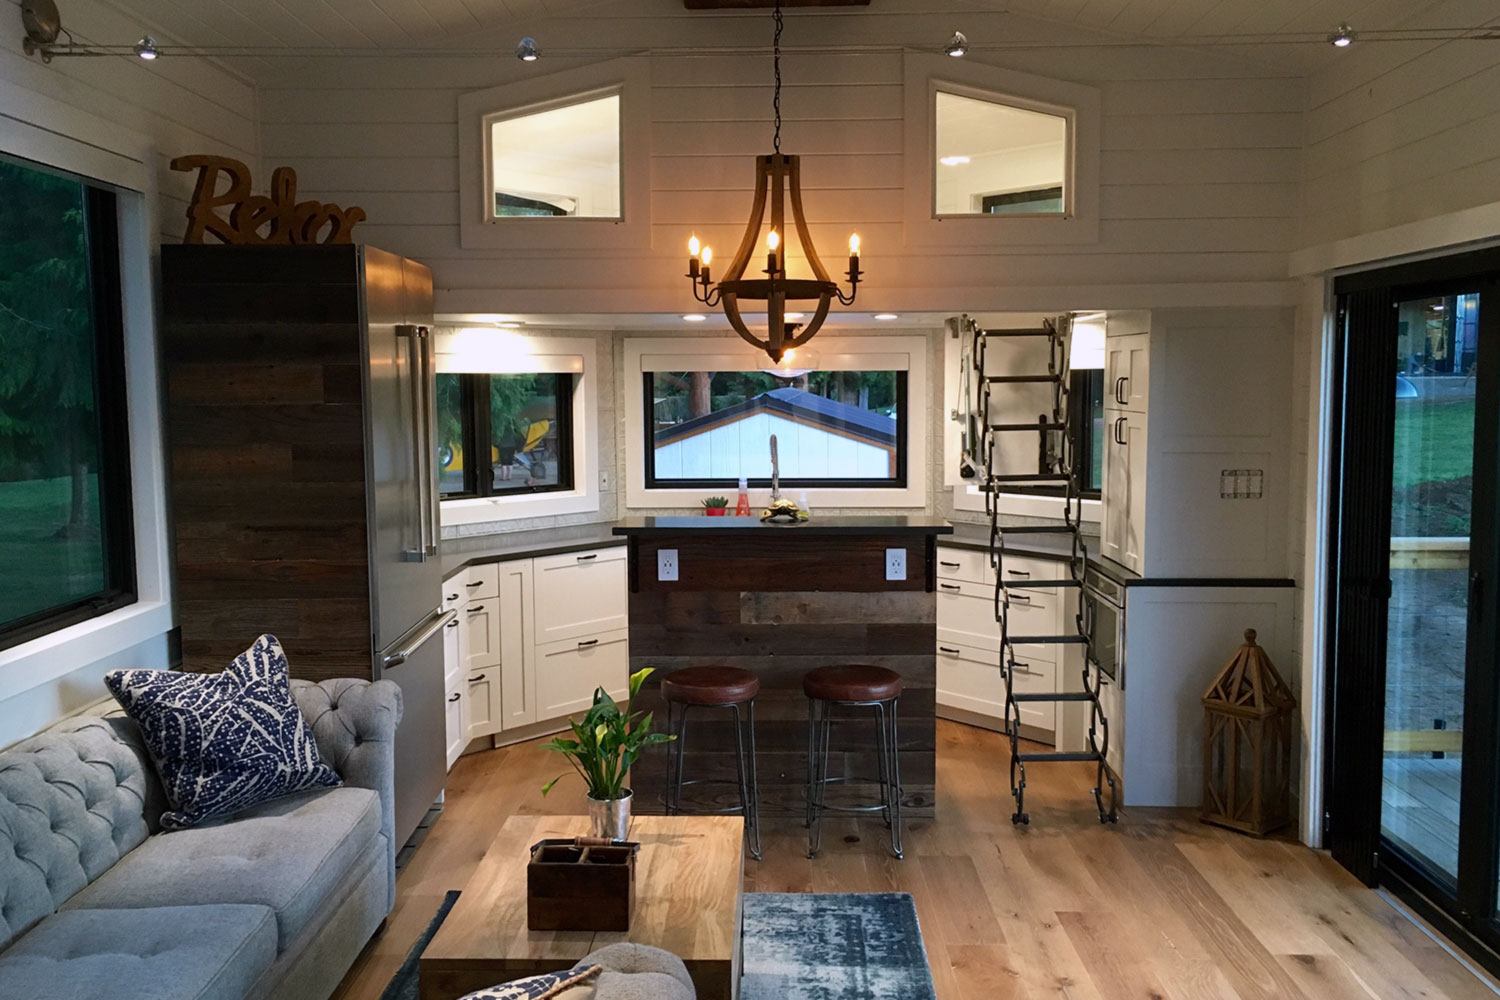 The Hawaii House By Tiny Heirloom TINY HOUSE TOWN